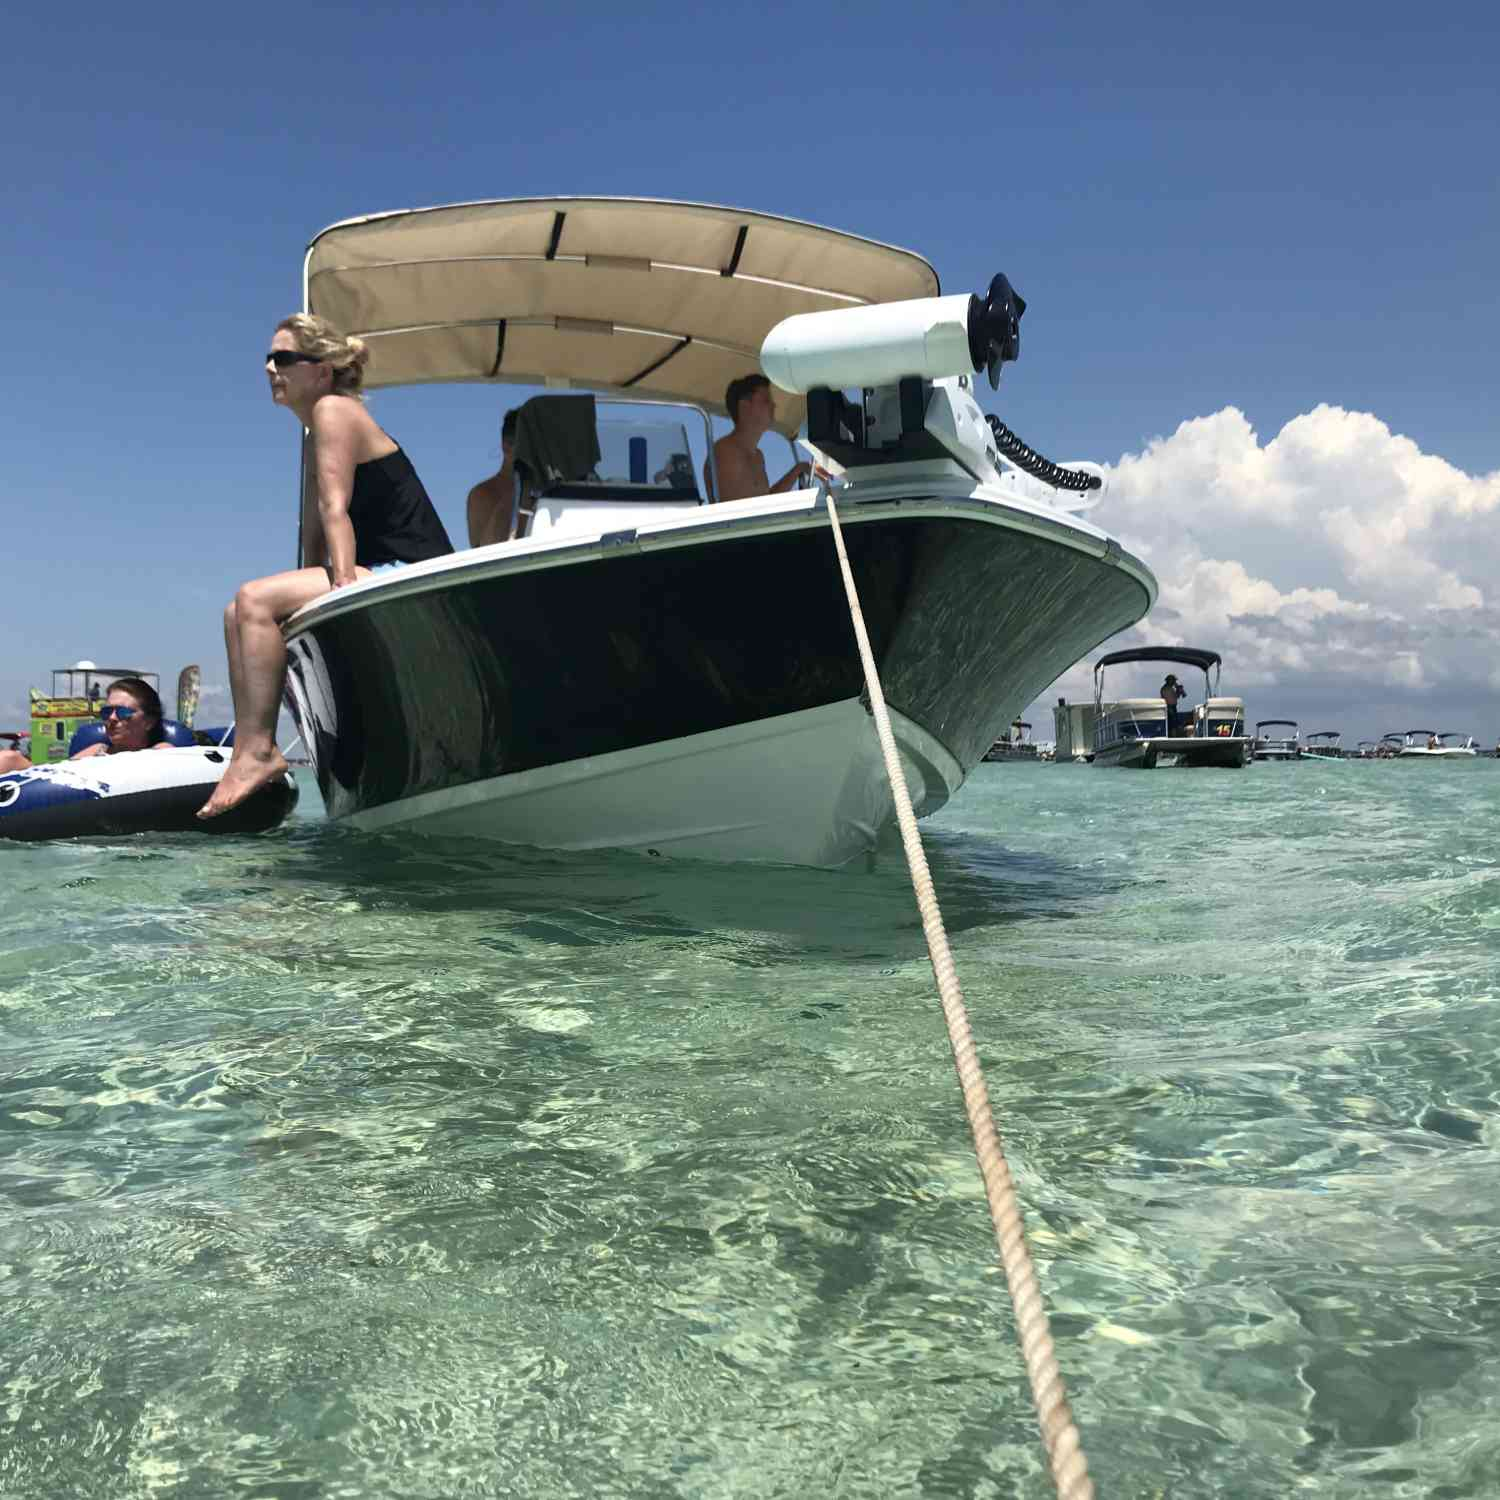 Title: Crab Island - On board their Sportsman Tournament 214 Bay Boat - Location: Destin, Florida. Participating in the Photo Contest #SportsmanAugust2018